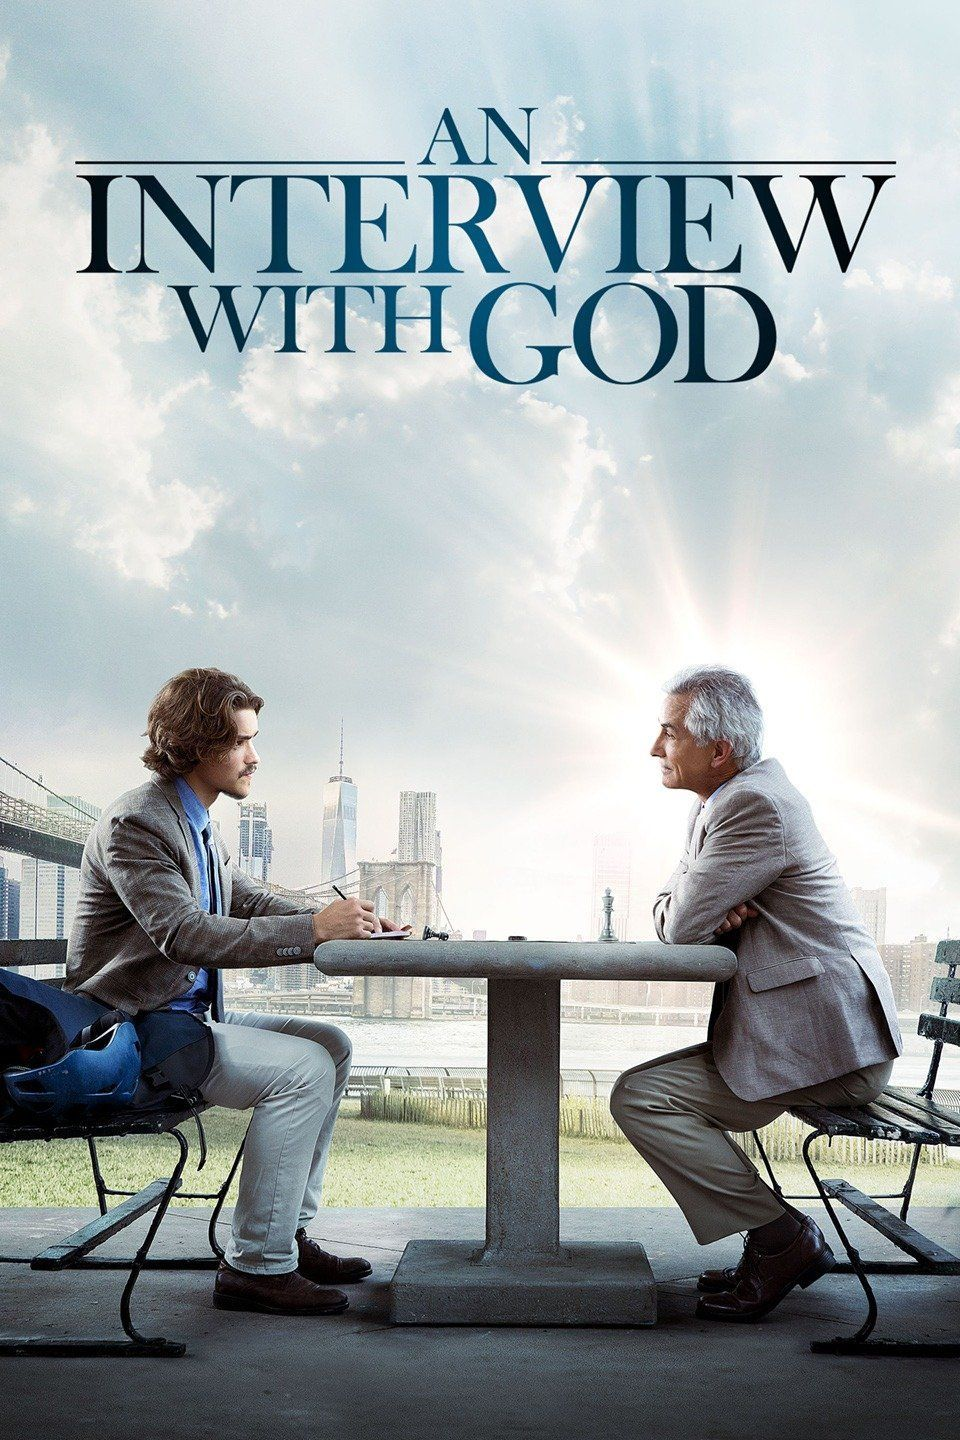 The Most Uplifting Christian Movies on Netflix To Watch